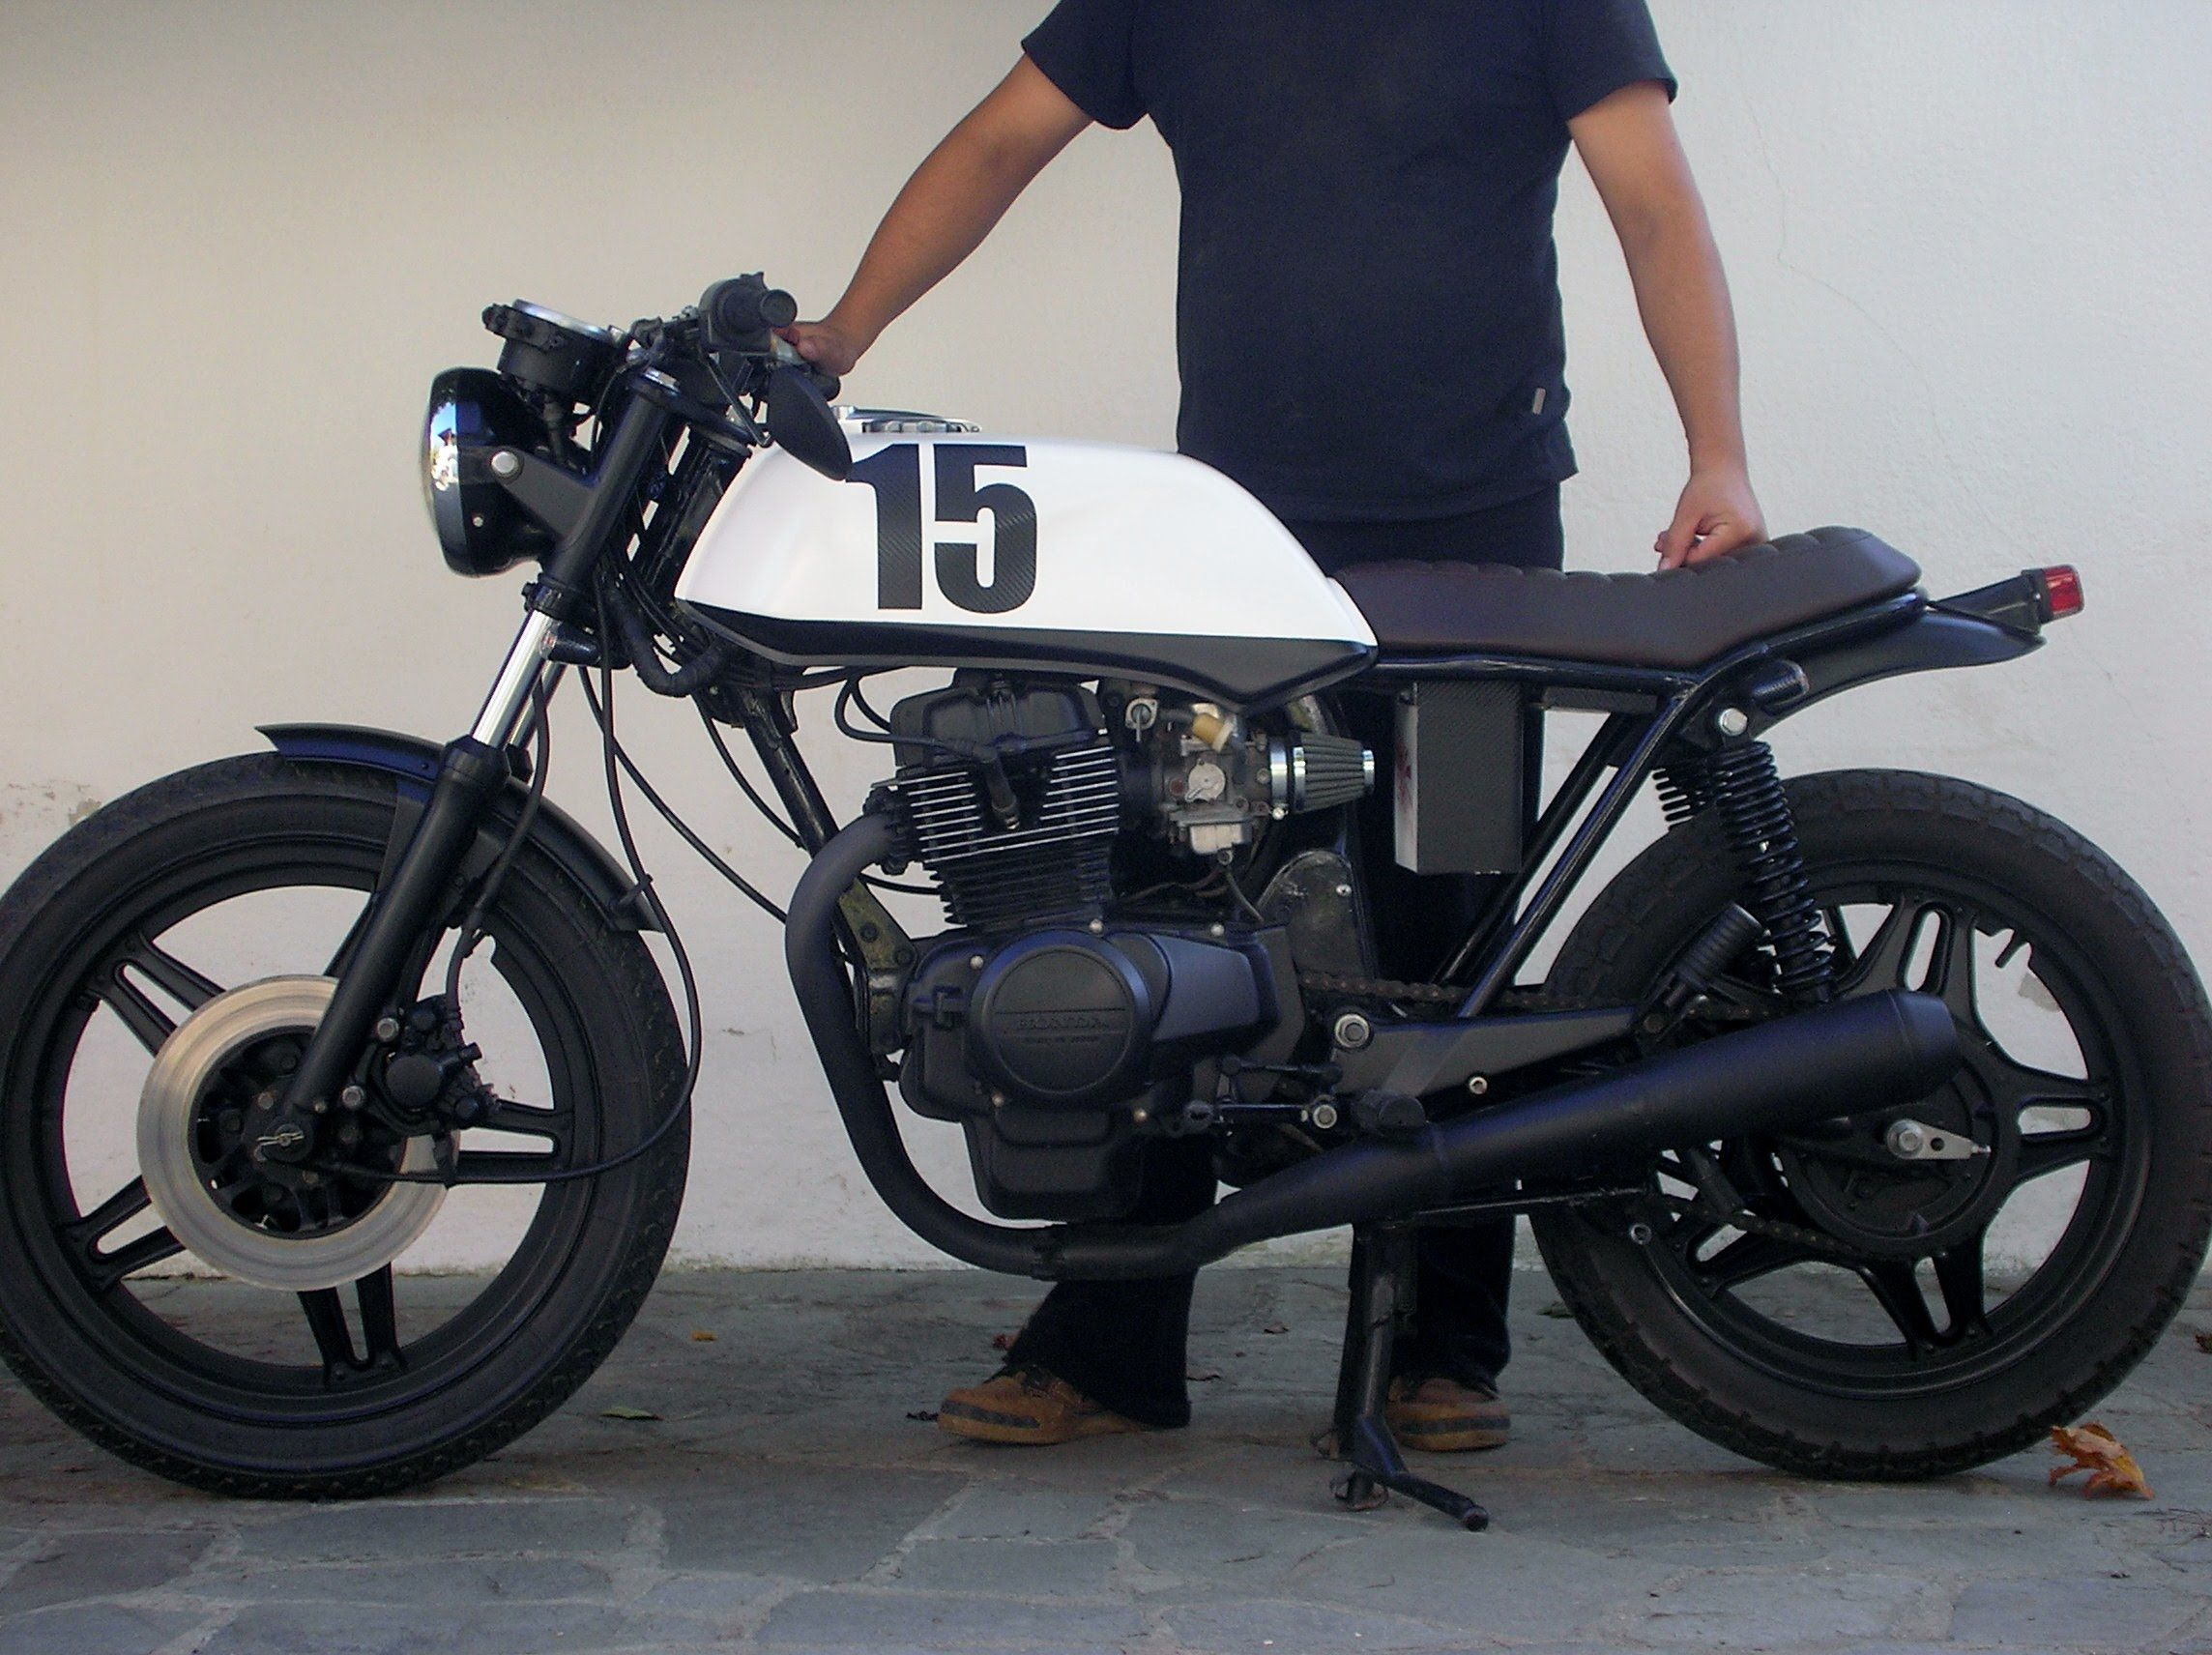 154 Awesome Cafe Racer Modification Ideas | Coolest Motorcycles